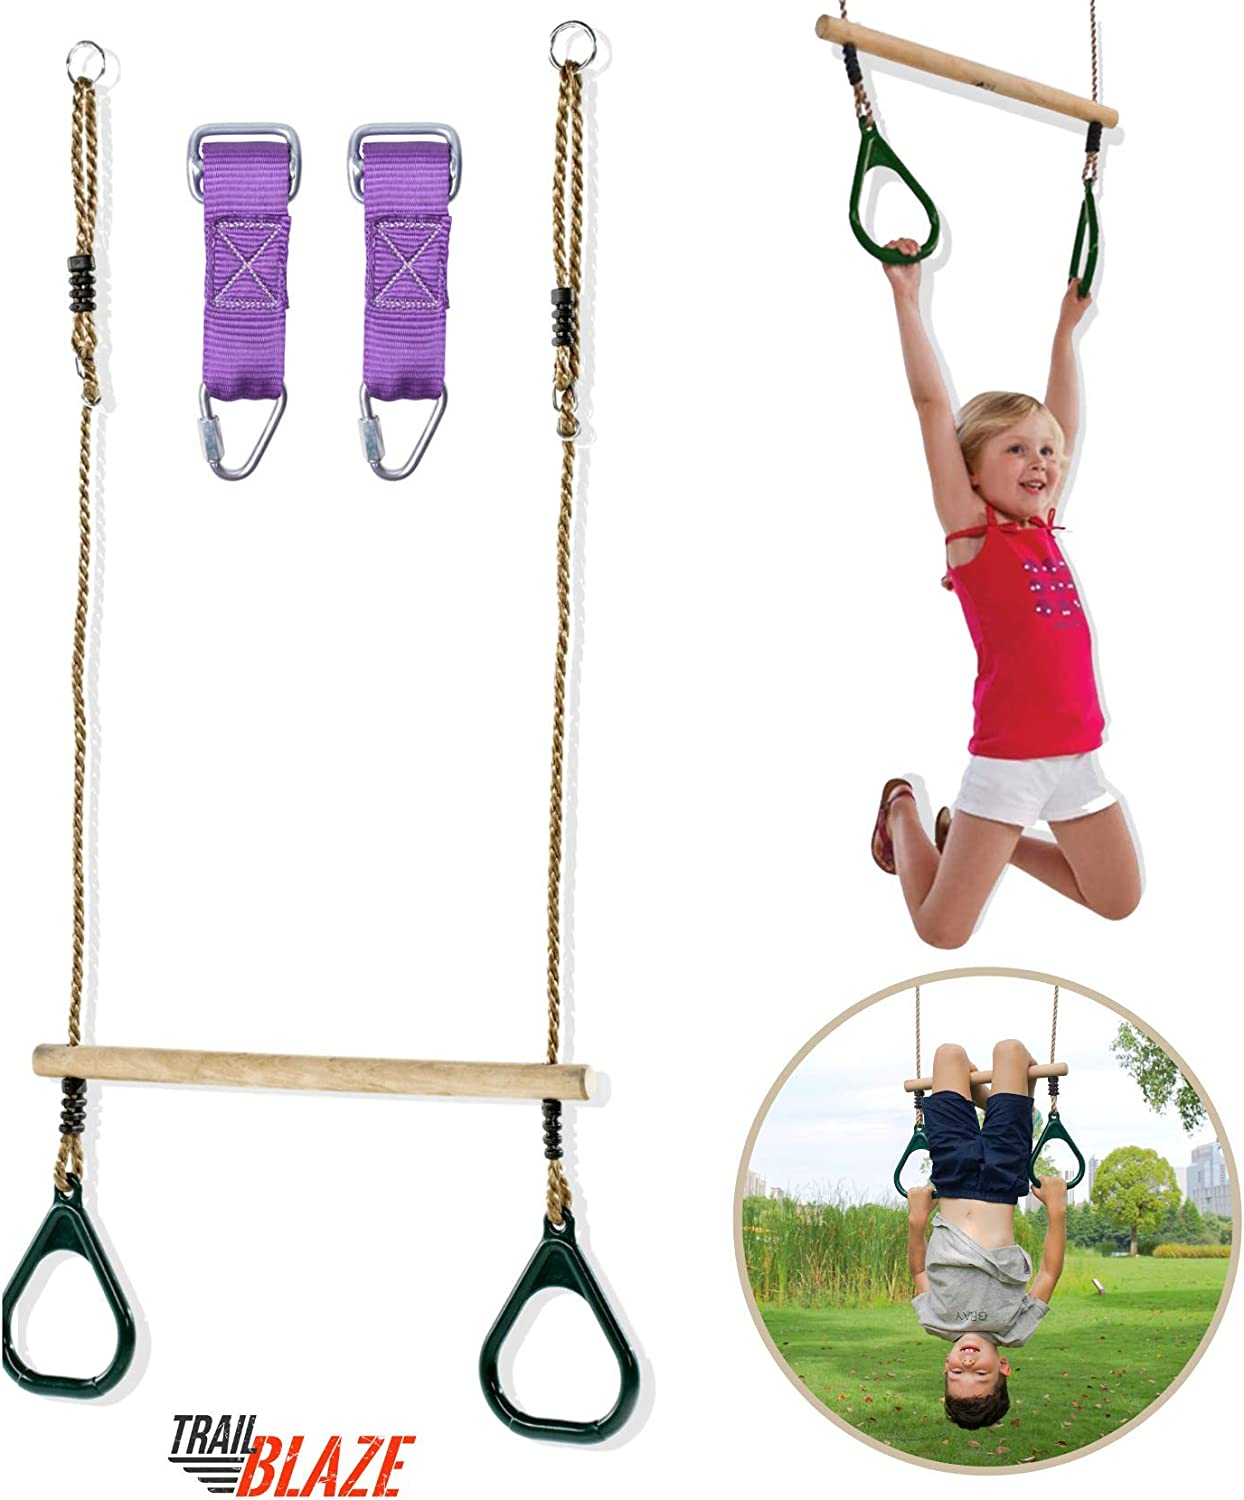 Trailblaze Premium Trapeze Swing Bar - Monkey Bars for Kids Swing Set Accessories Buckle Straps Connect to Ninja Warrior Obstacle Course for Kids | Playground Backyard Jungle Gym Outdoor Rope Swing